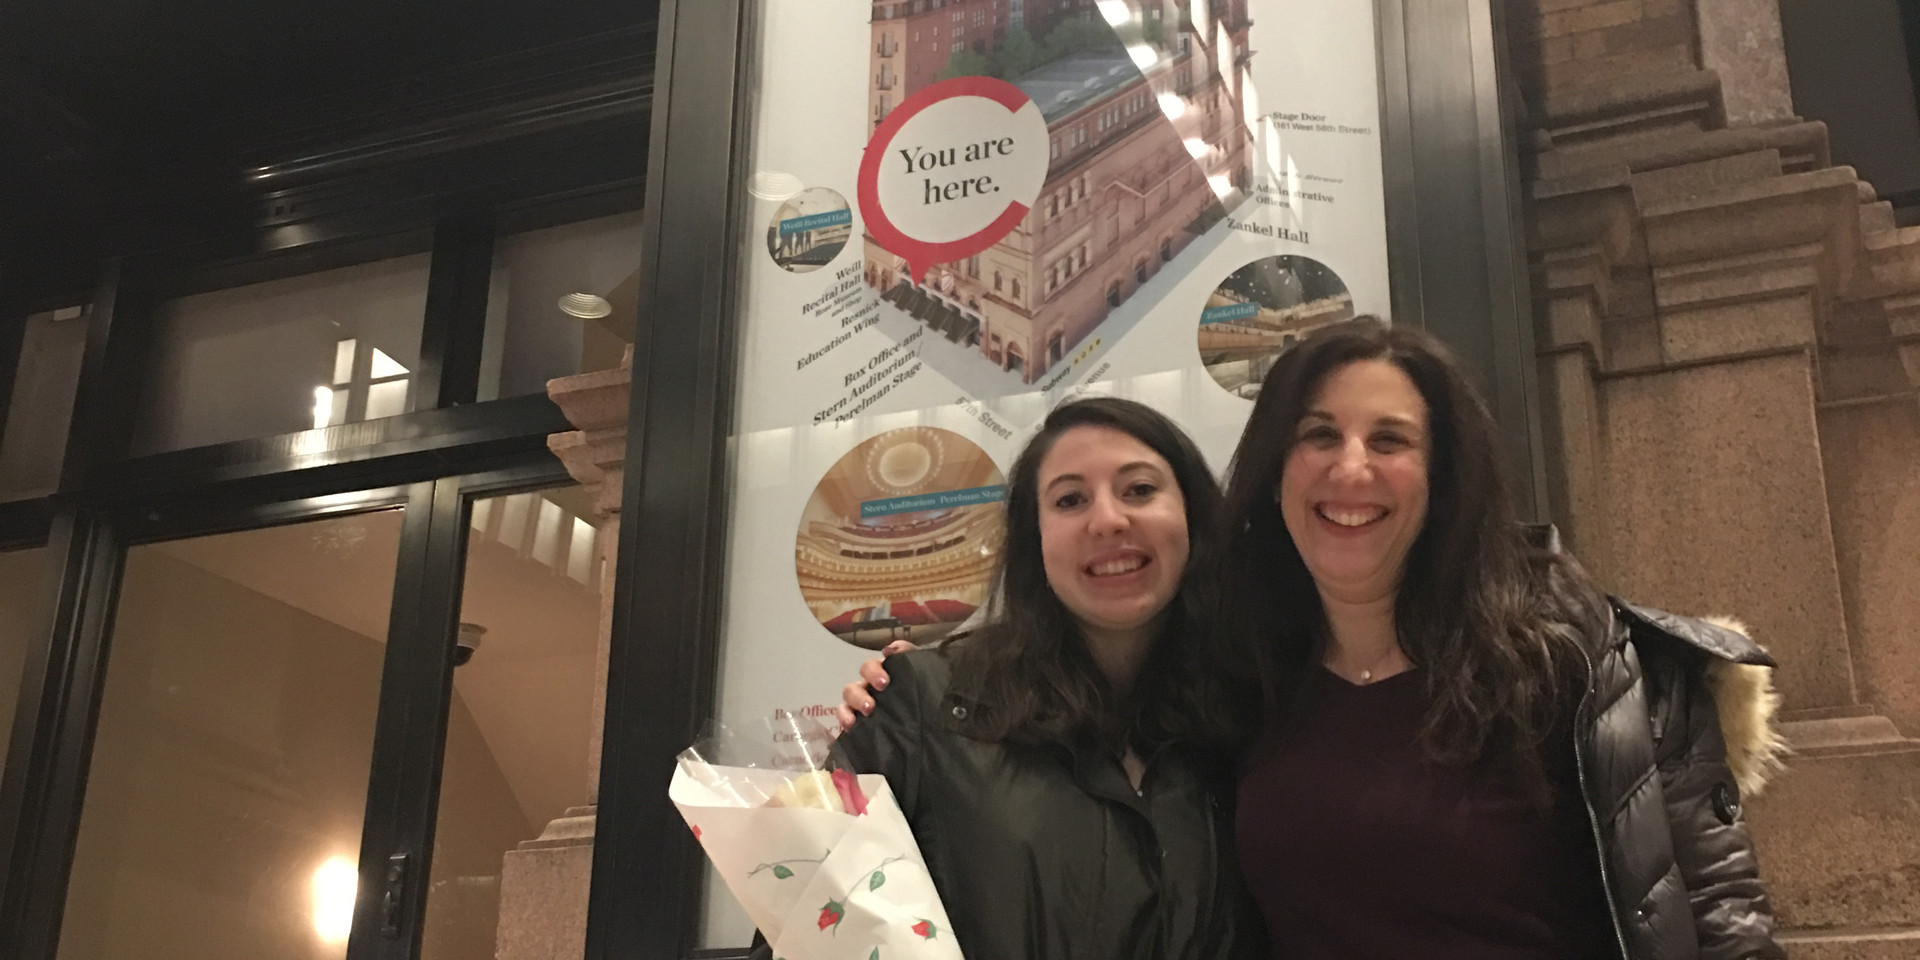 Arielle and Pam Belluck at Carnegie Hall